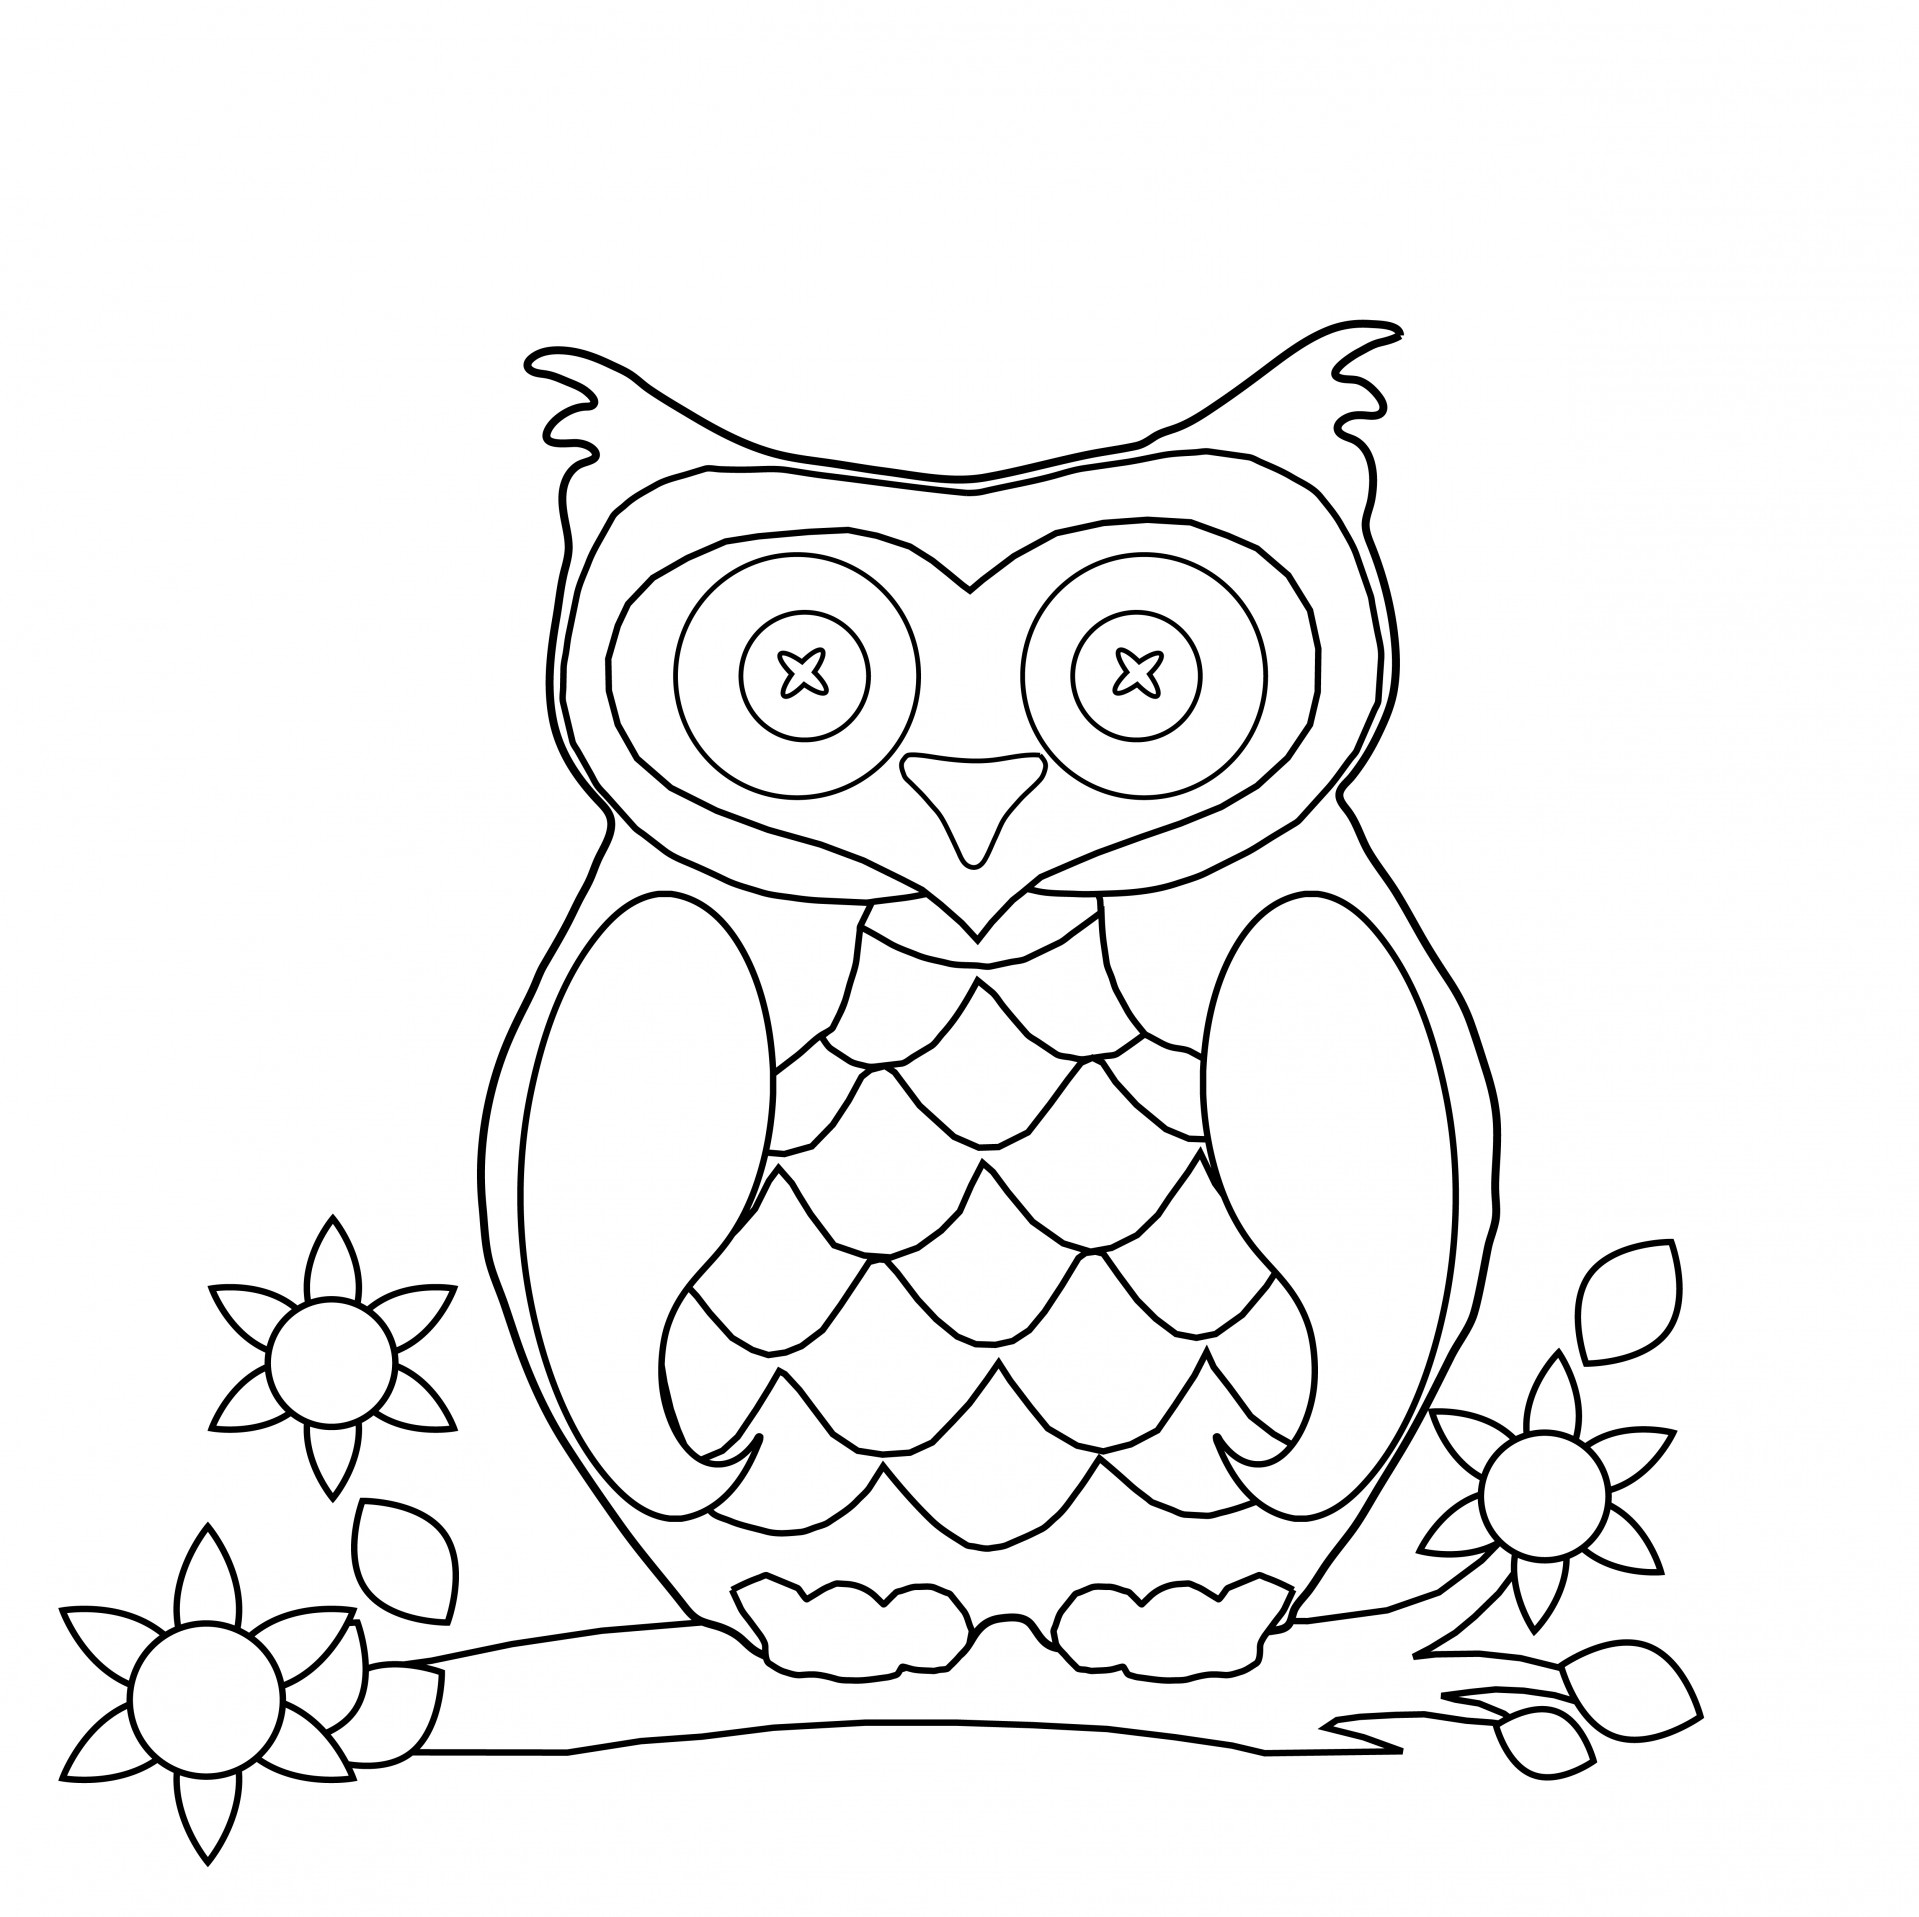 coloring page simple simple butterfly coloring page coloring home coloring page simple